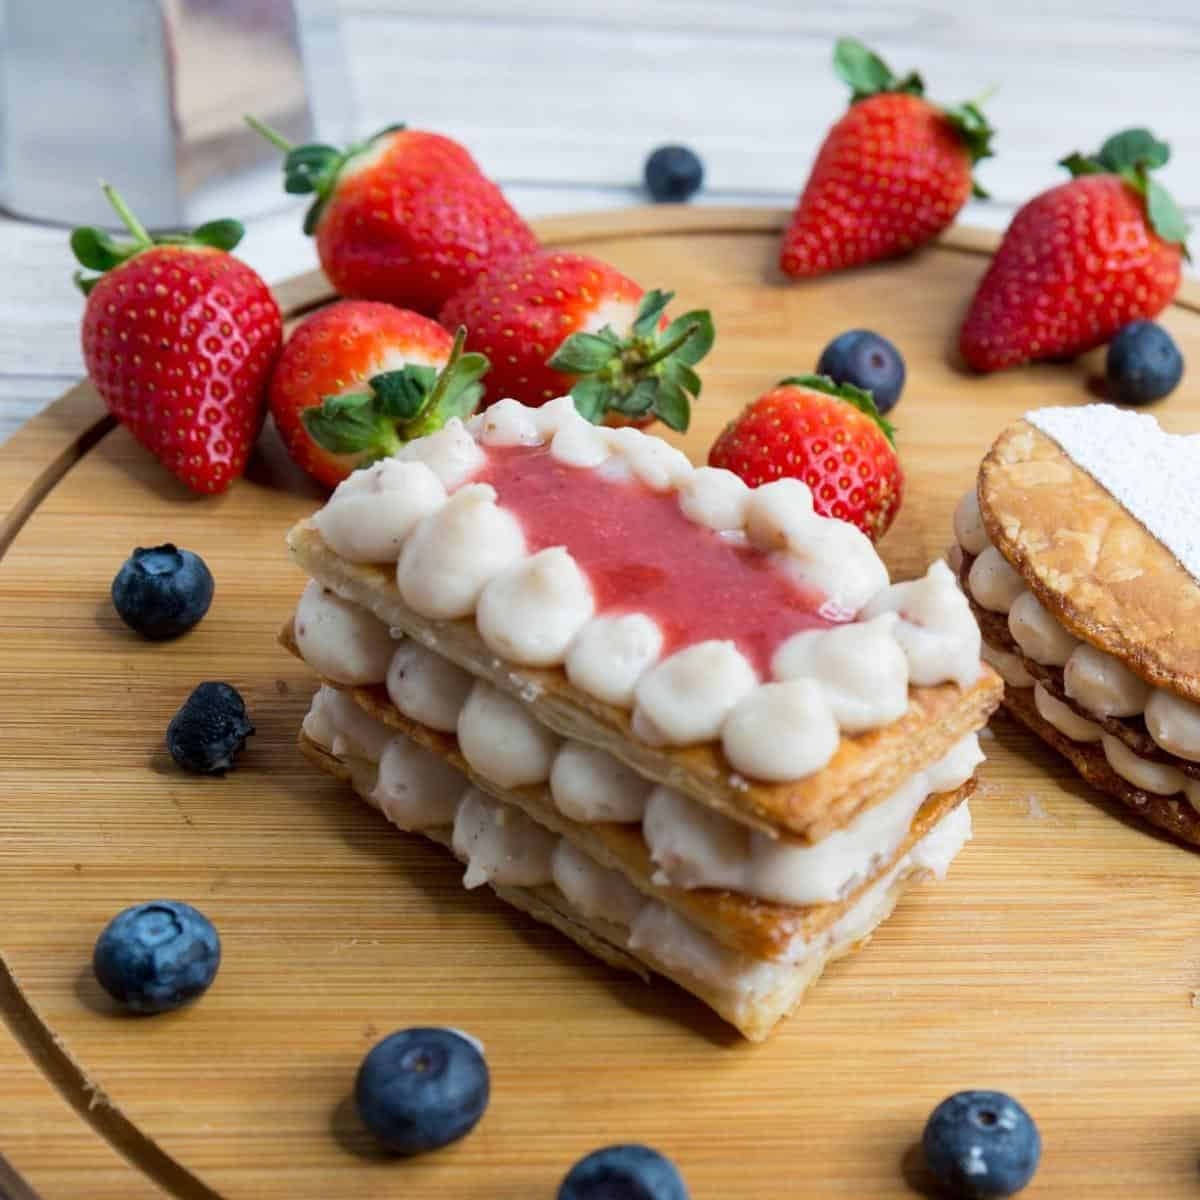 Strawberry Mille Feuille on a wooden board